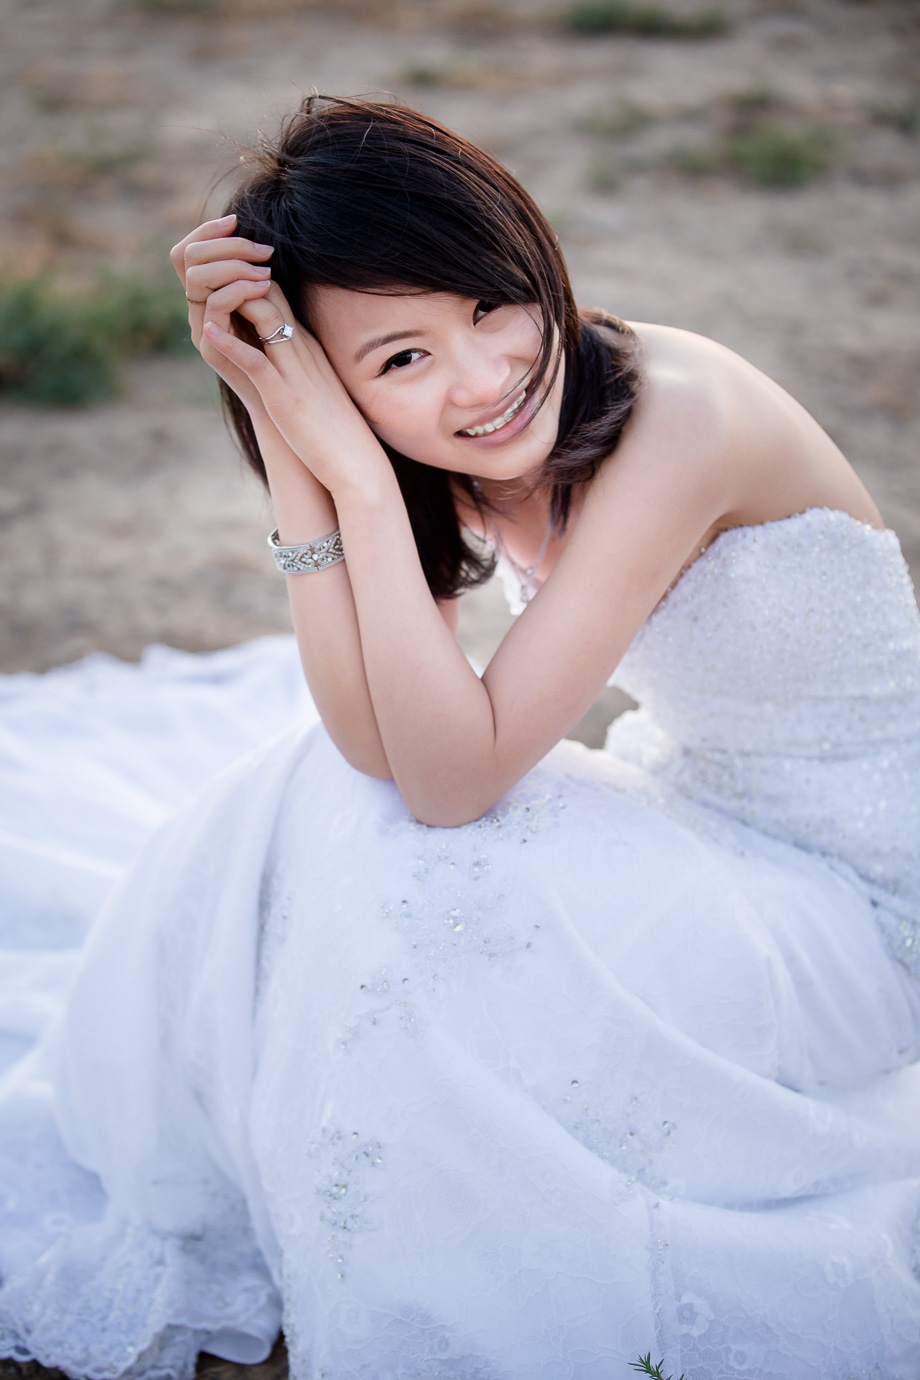 beautiful Asian bridal portrait at park in white wedding dress